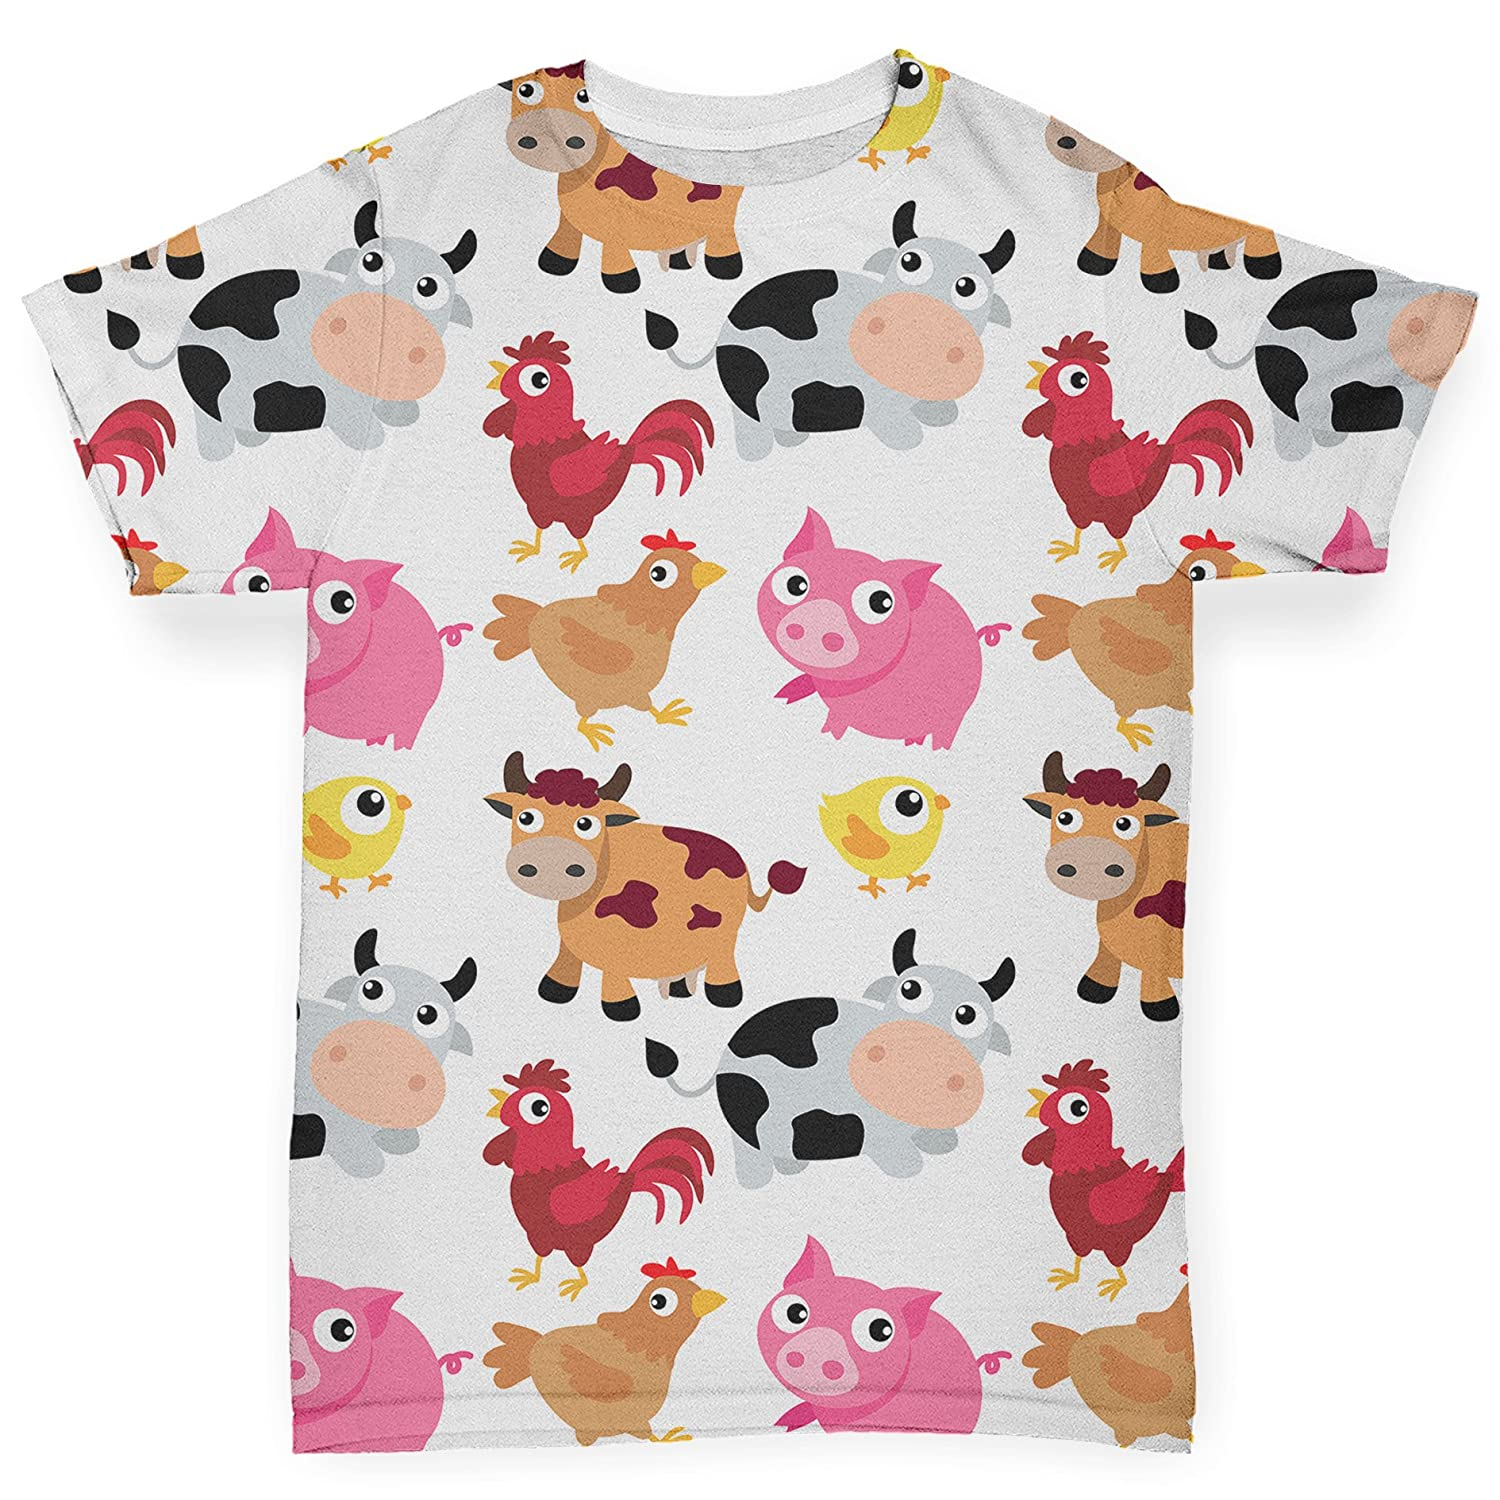 TWISTED ENVY Farm Yard Animal Baby Toddler Funny All-Over Print - Baby T-Shirt